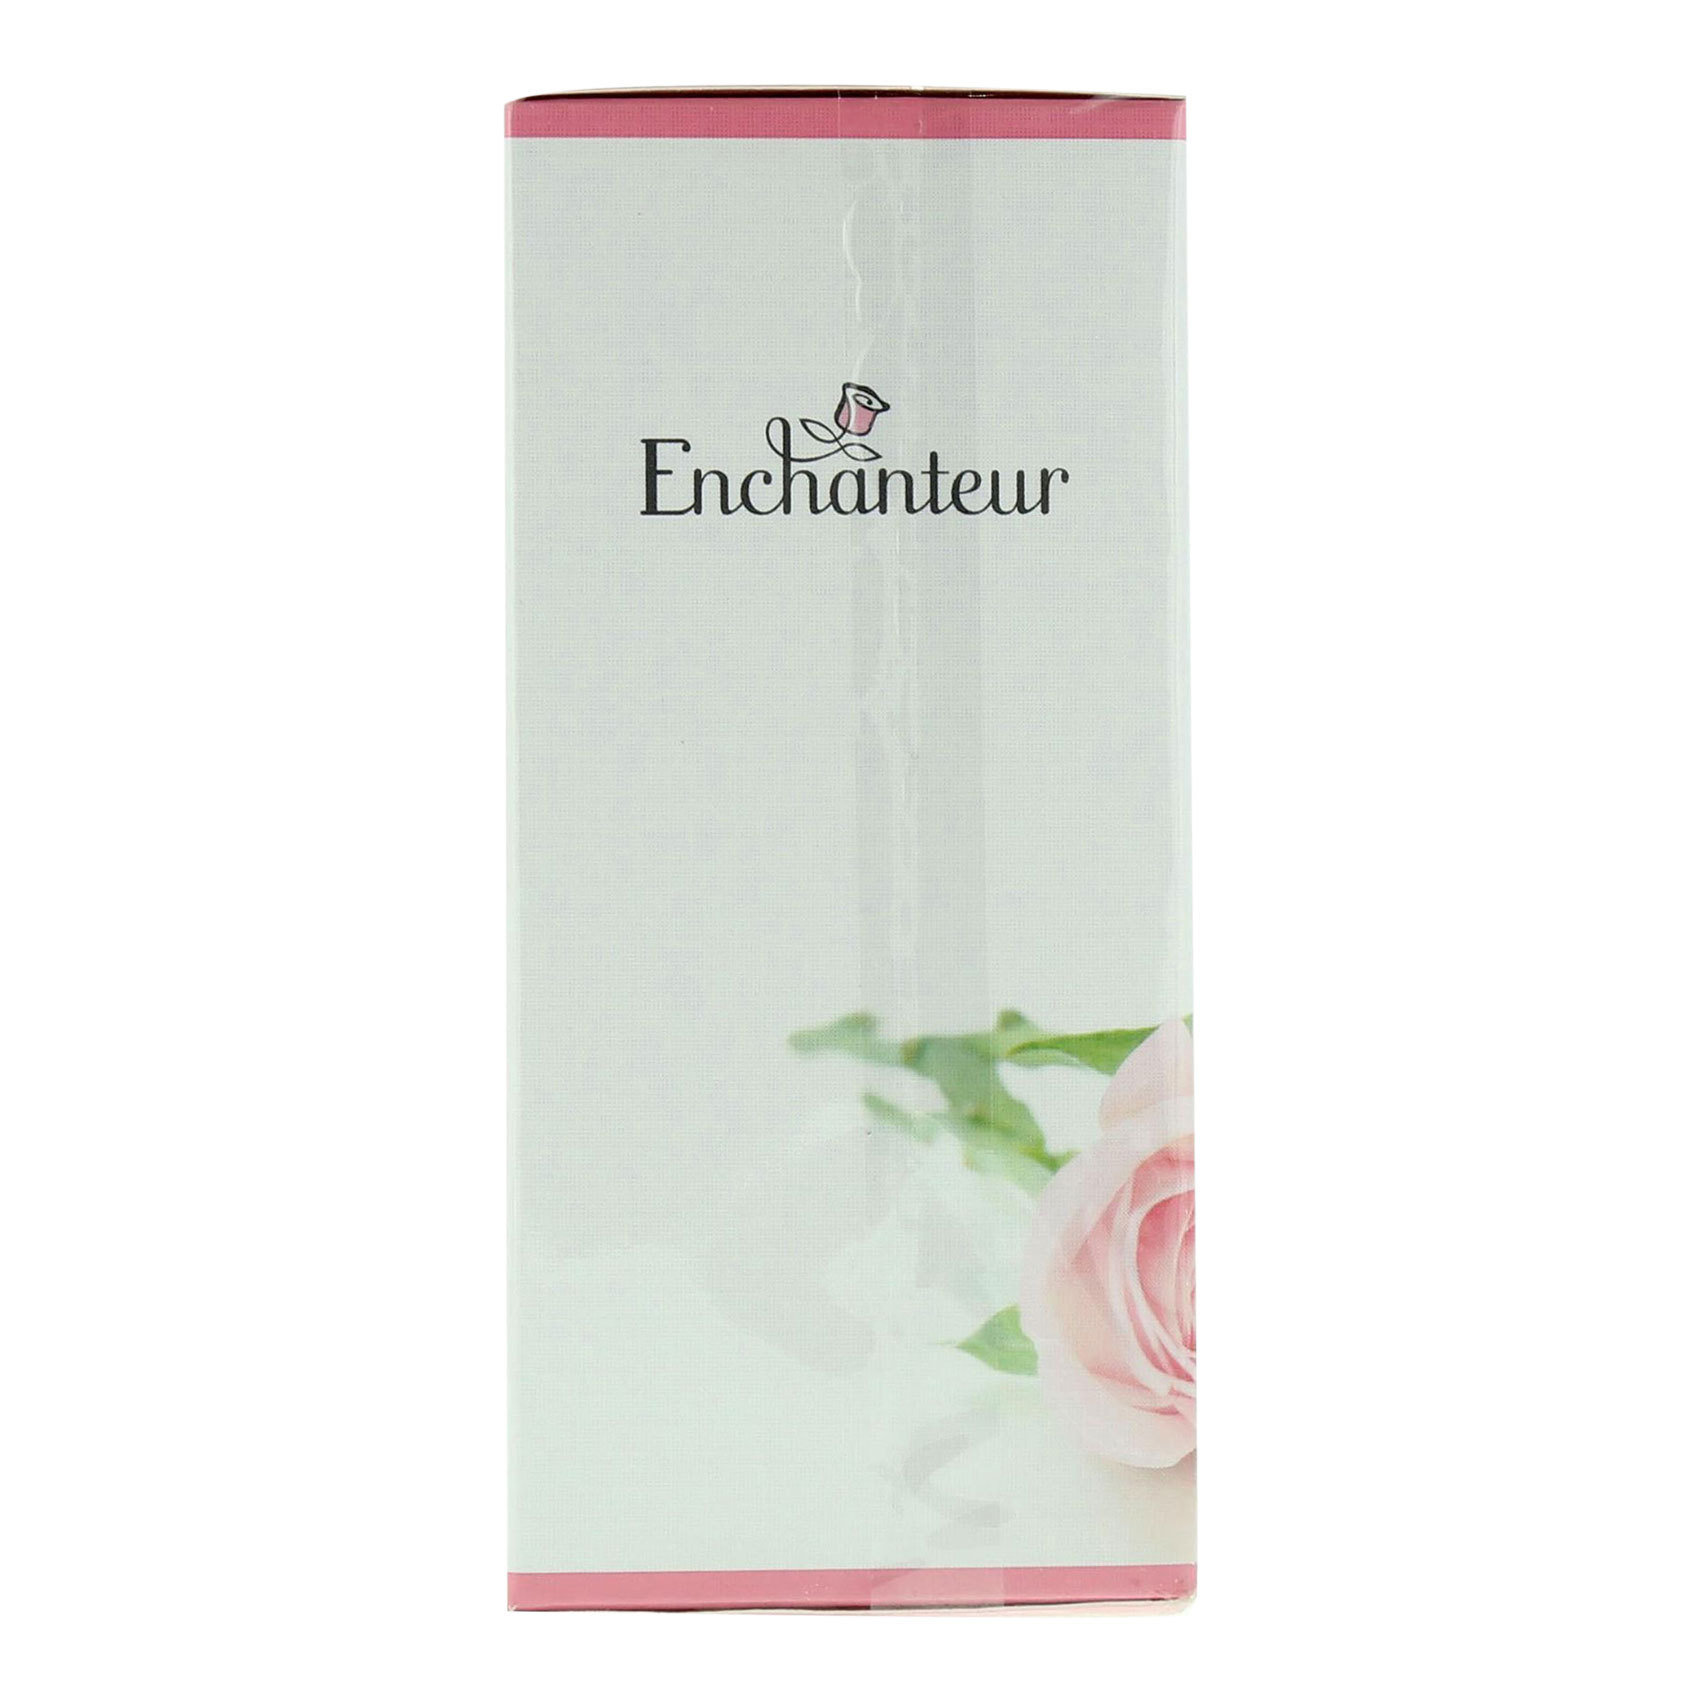 ENCHANTEUR EDT ROMAN 100ML